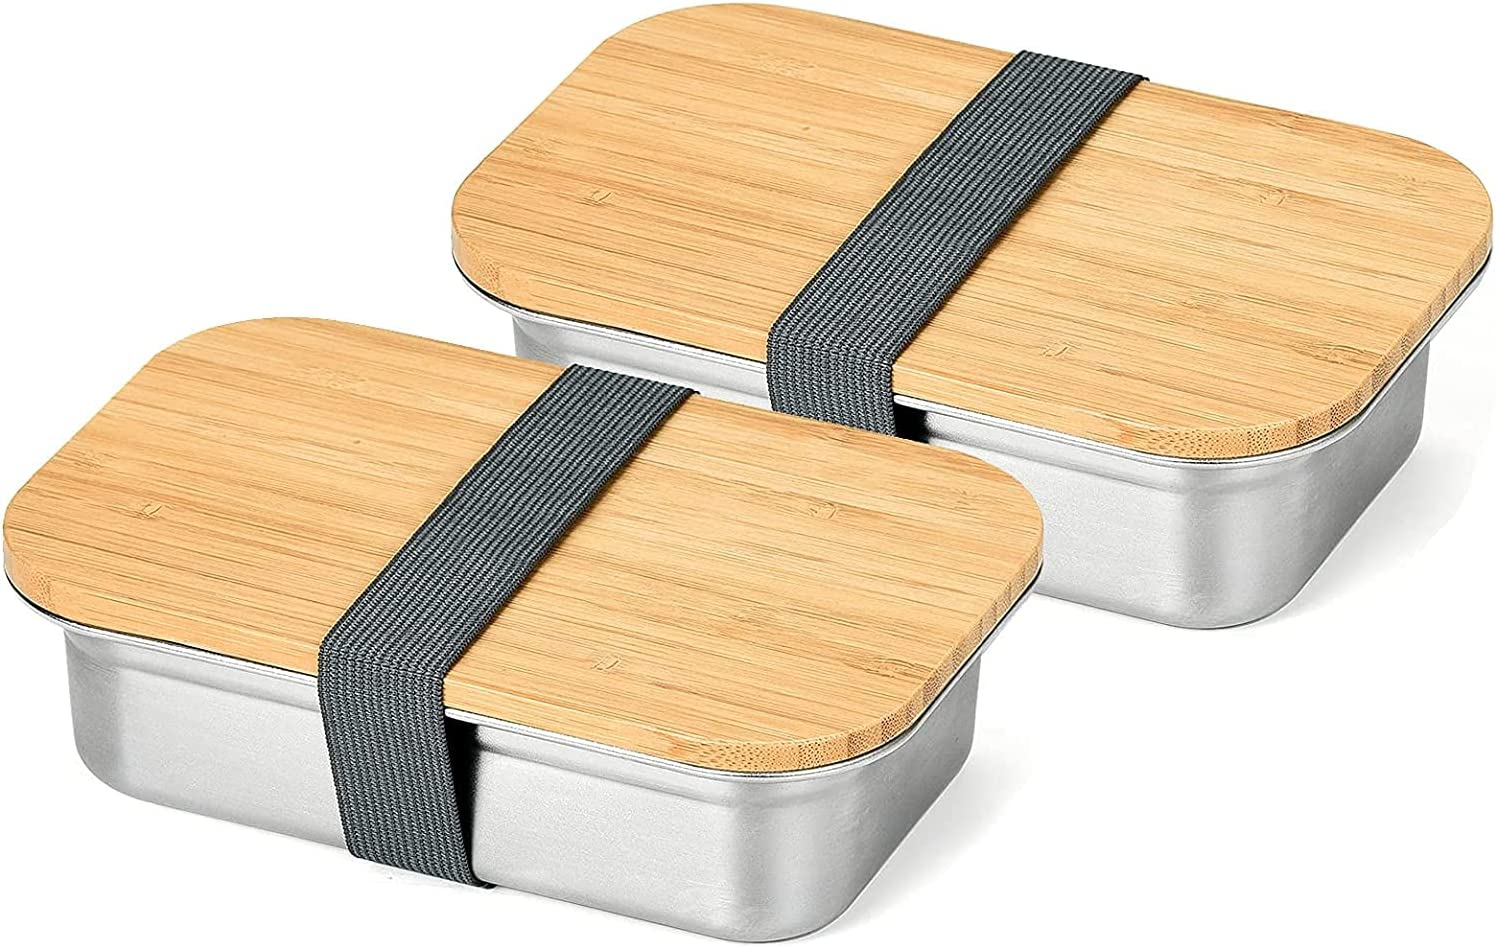 Bento Box Set For Adults Kids, Hystun Lunch Box Stainless Steel Snack Container with Leak-Proof Sealed Wooden Lid Japanese Food Containers for Work/School Lunch Packing/Meal Prep, Silver